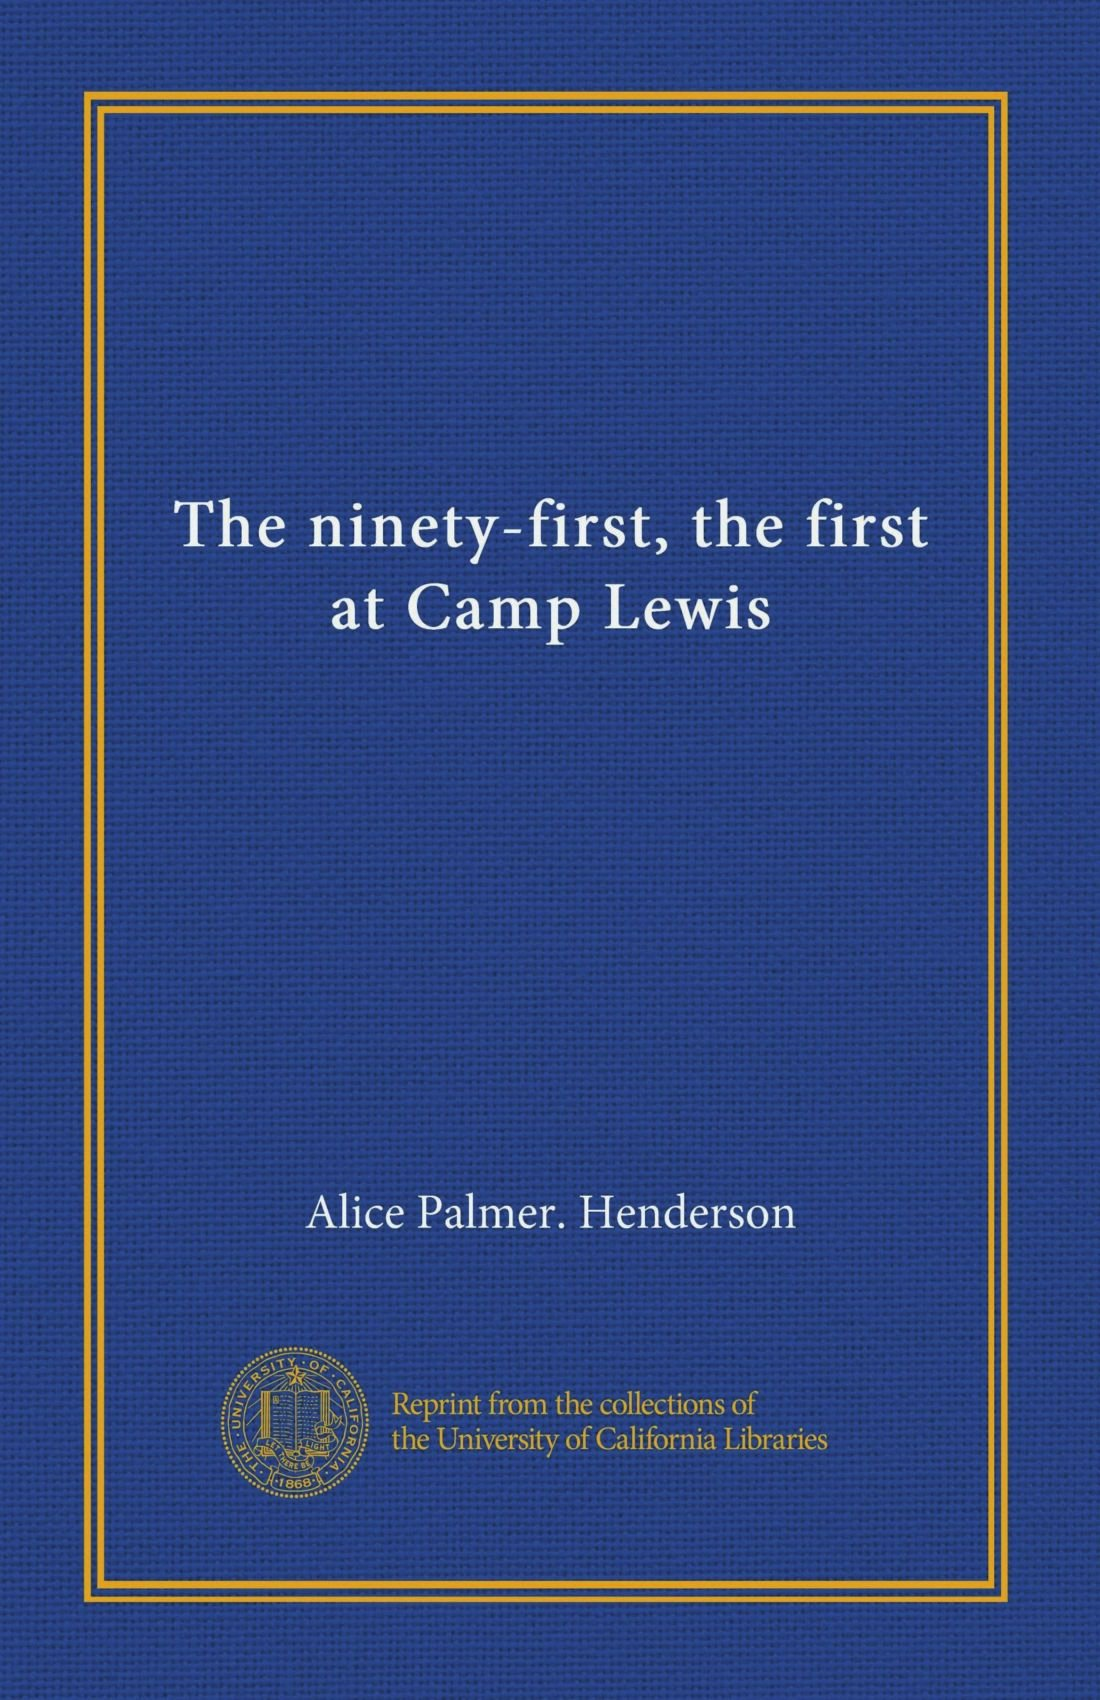 The ninety-first, the first at Camp Lewis PDF